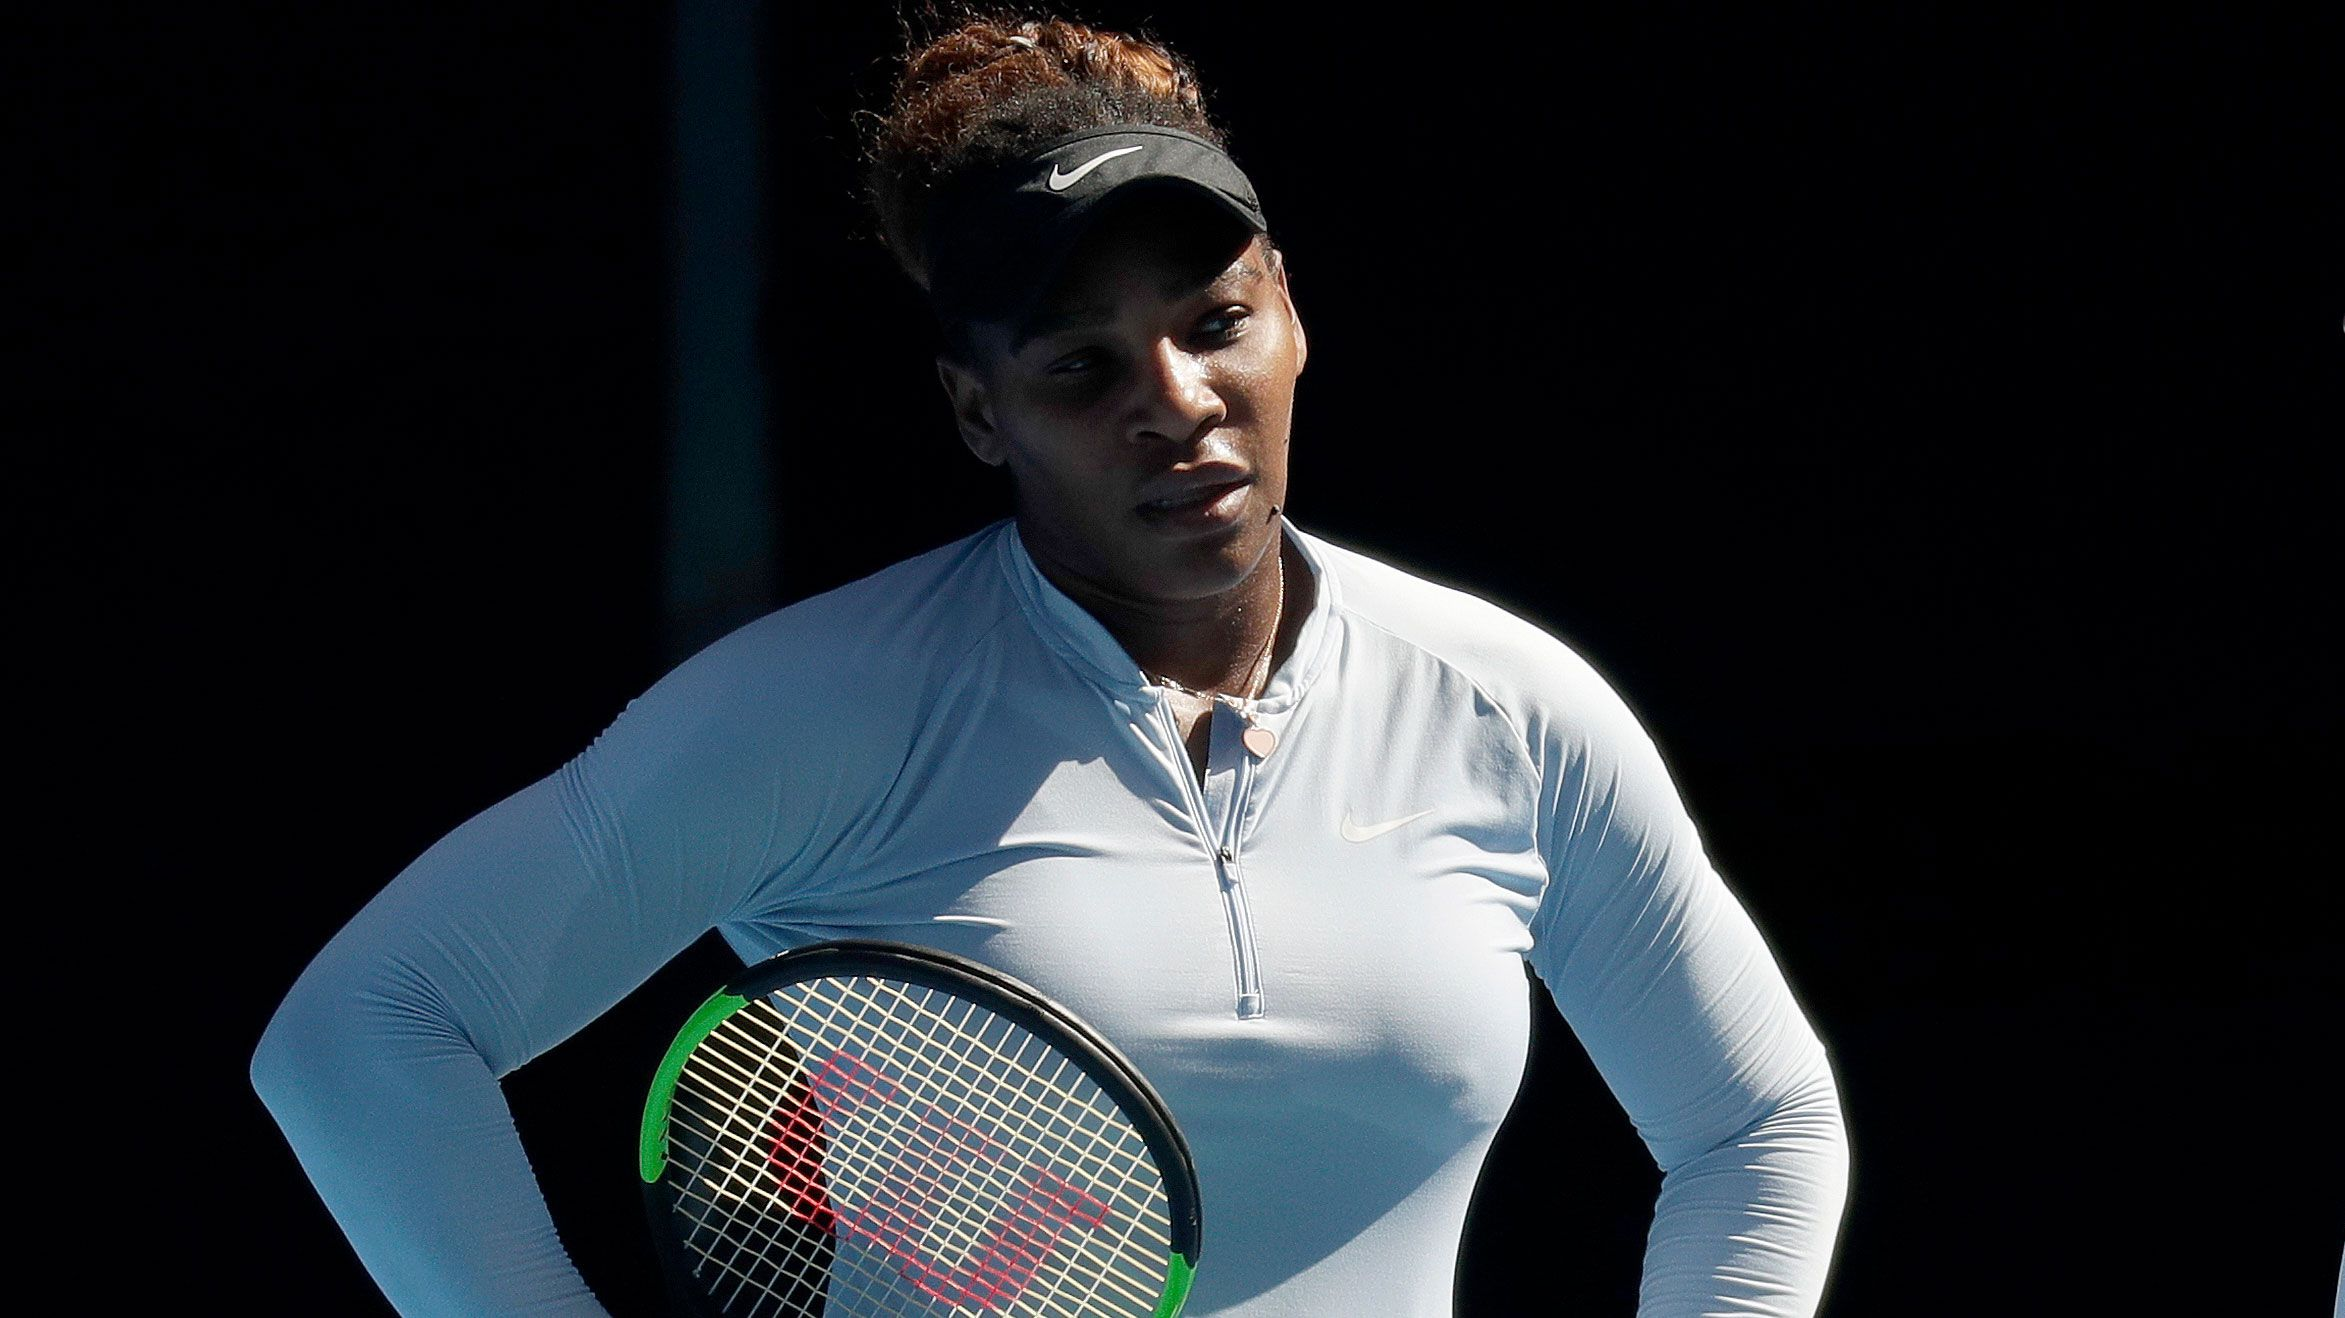 Sam Smith reveals her expectations of Serena Williams at Australian Open